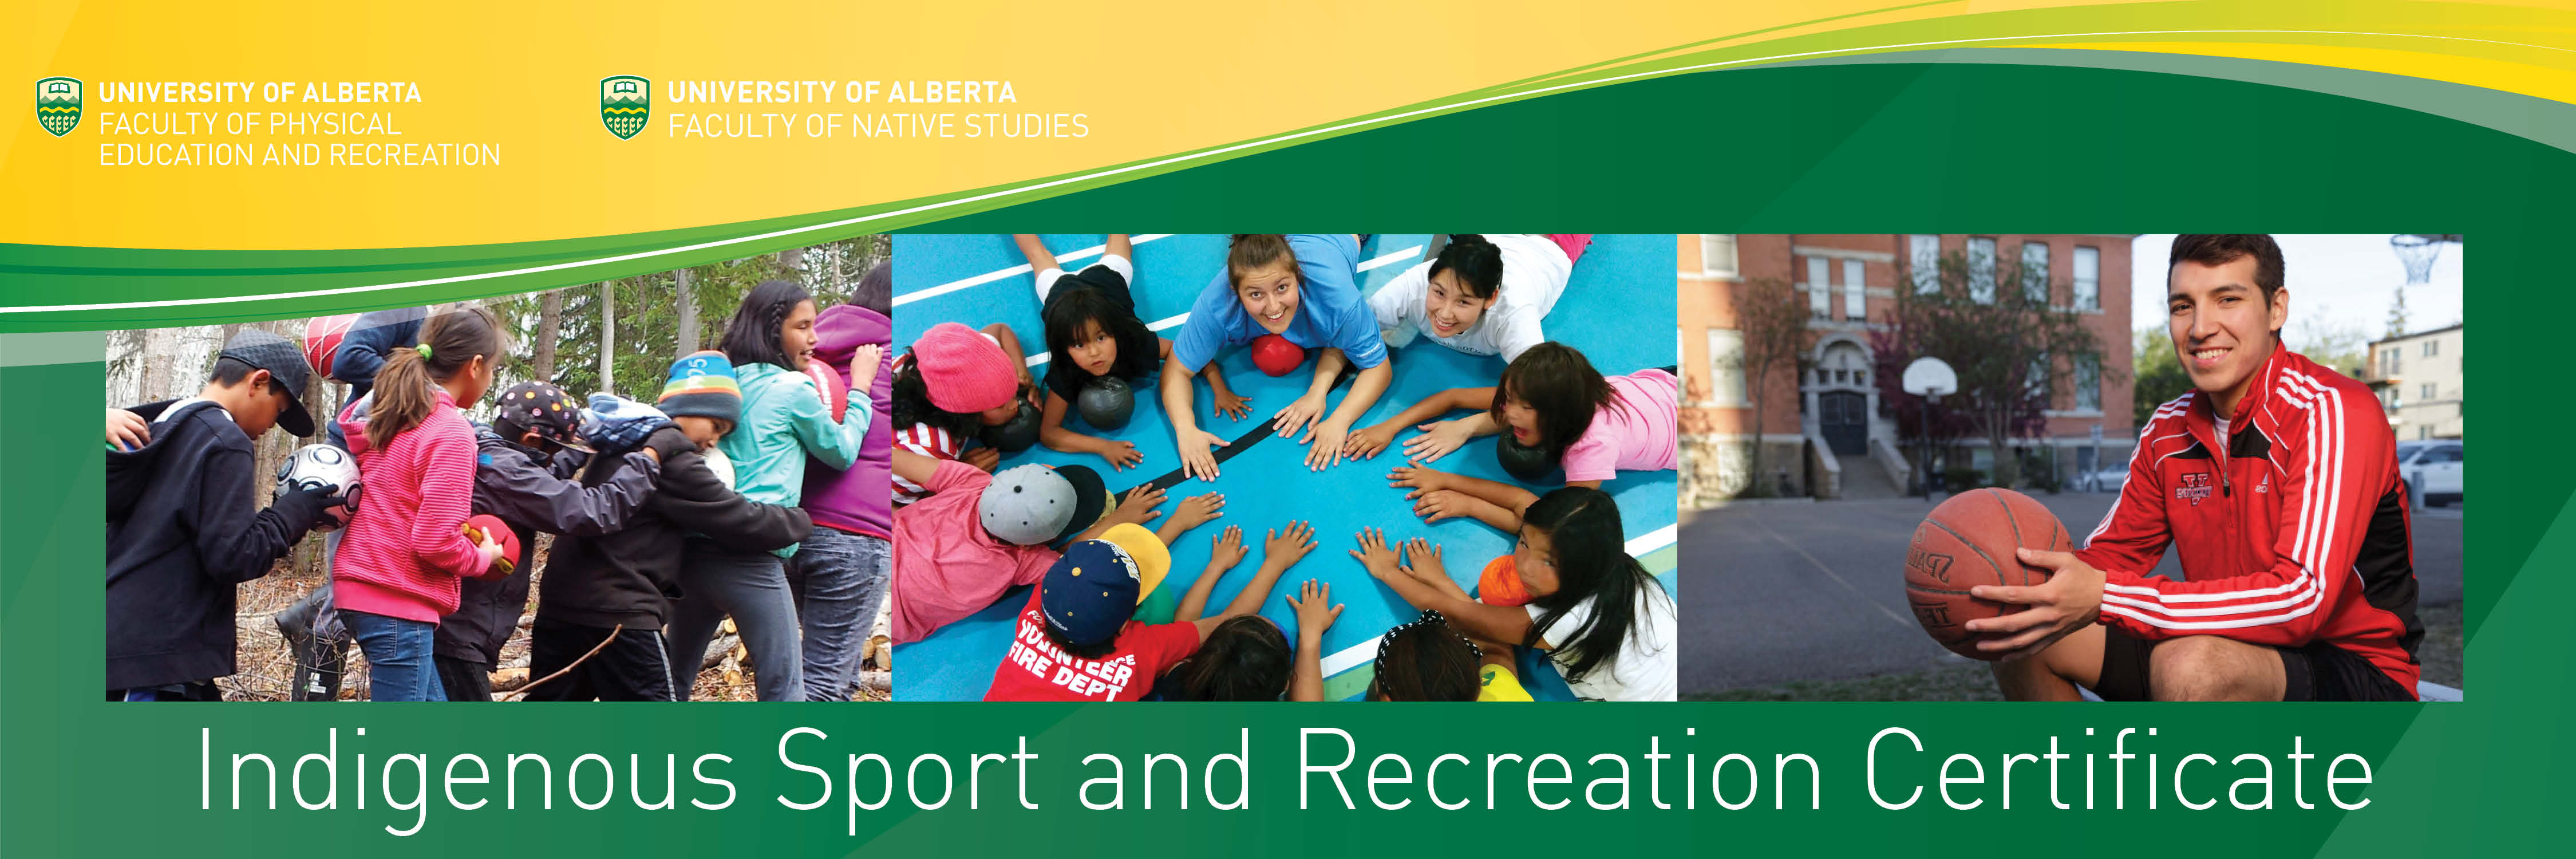 Indigenous Sport and Recreation Certificate